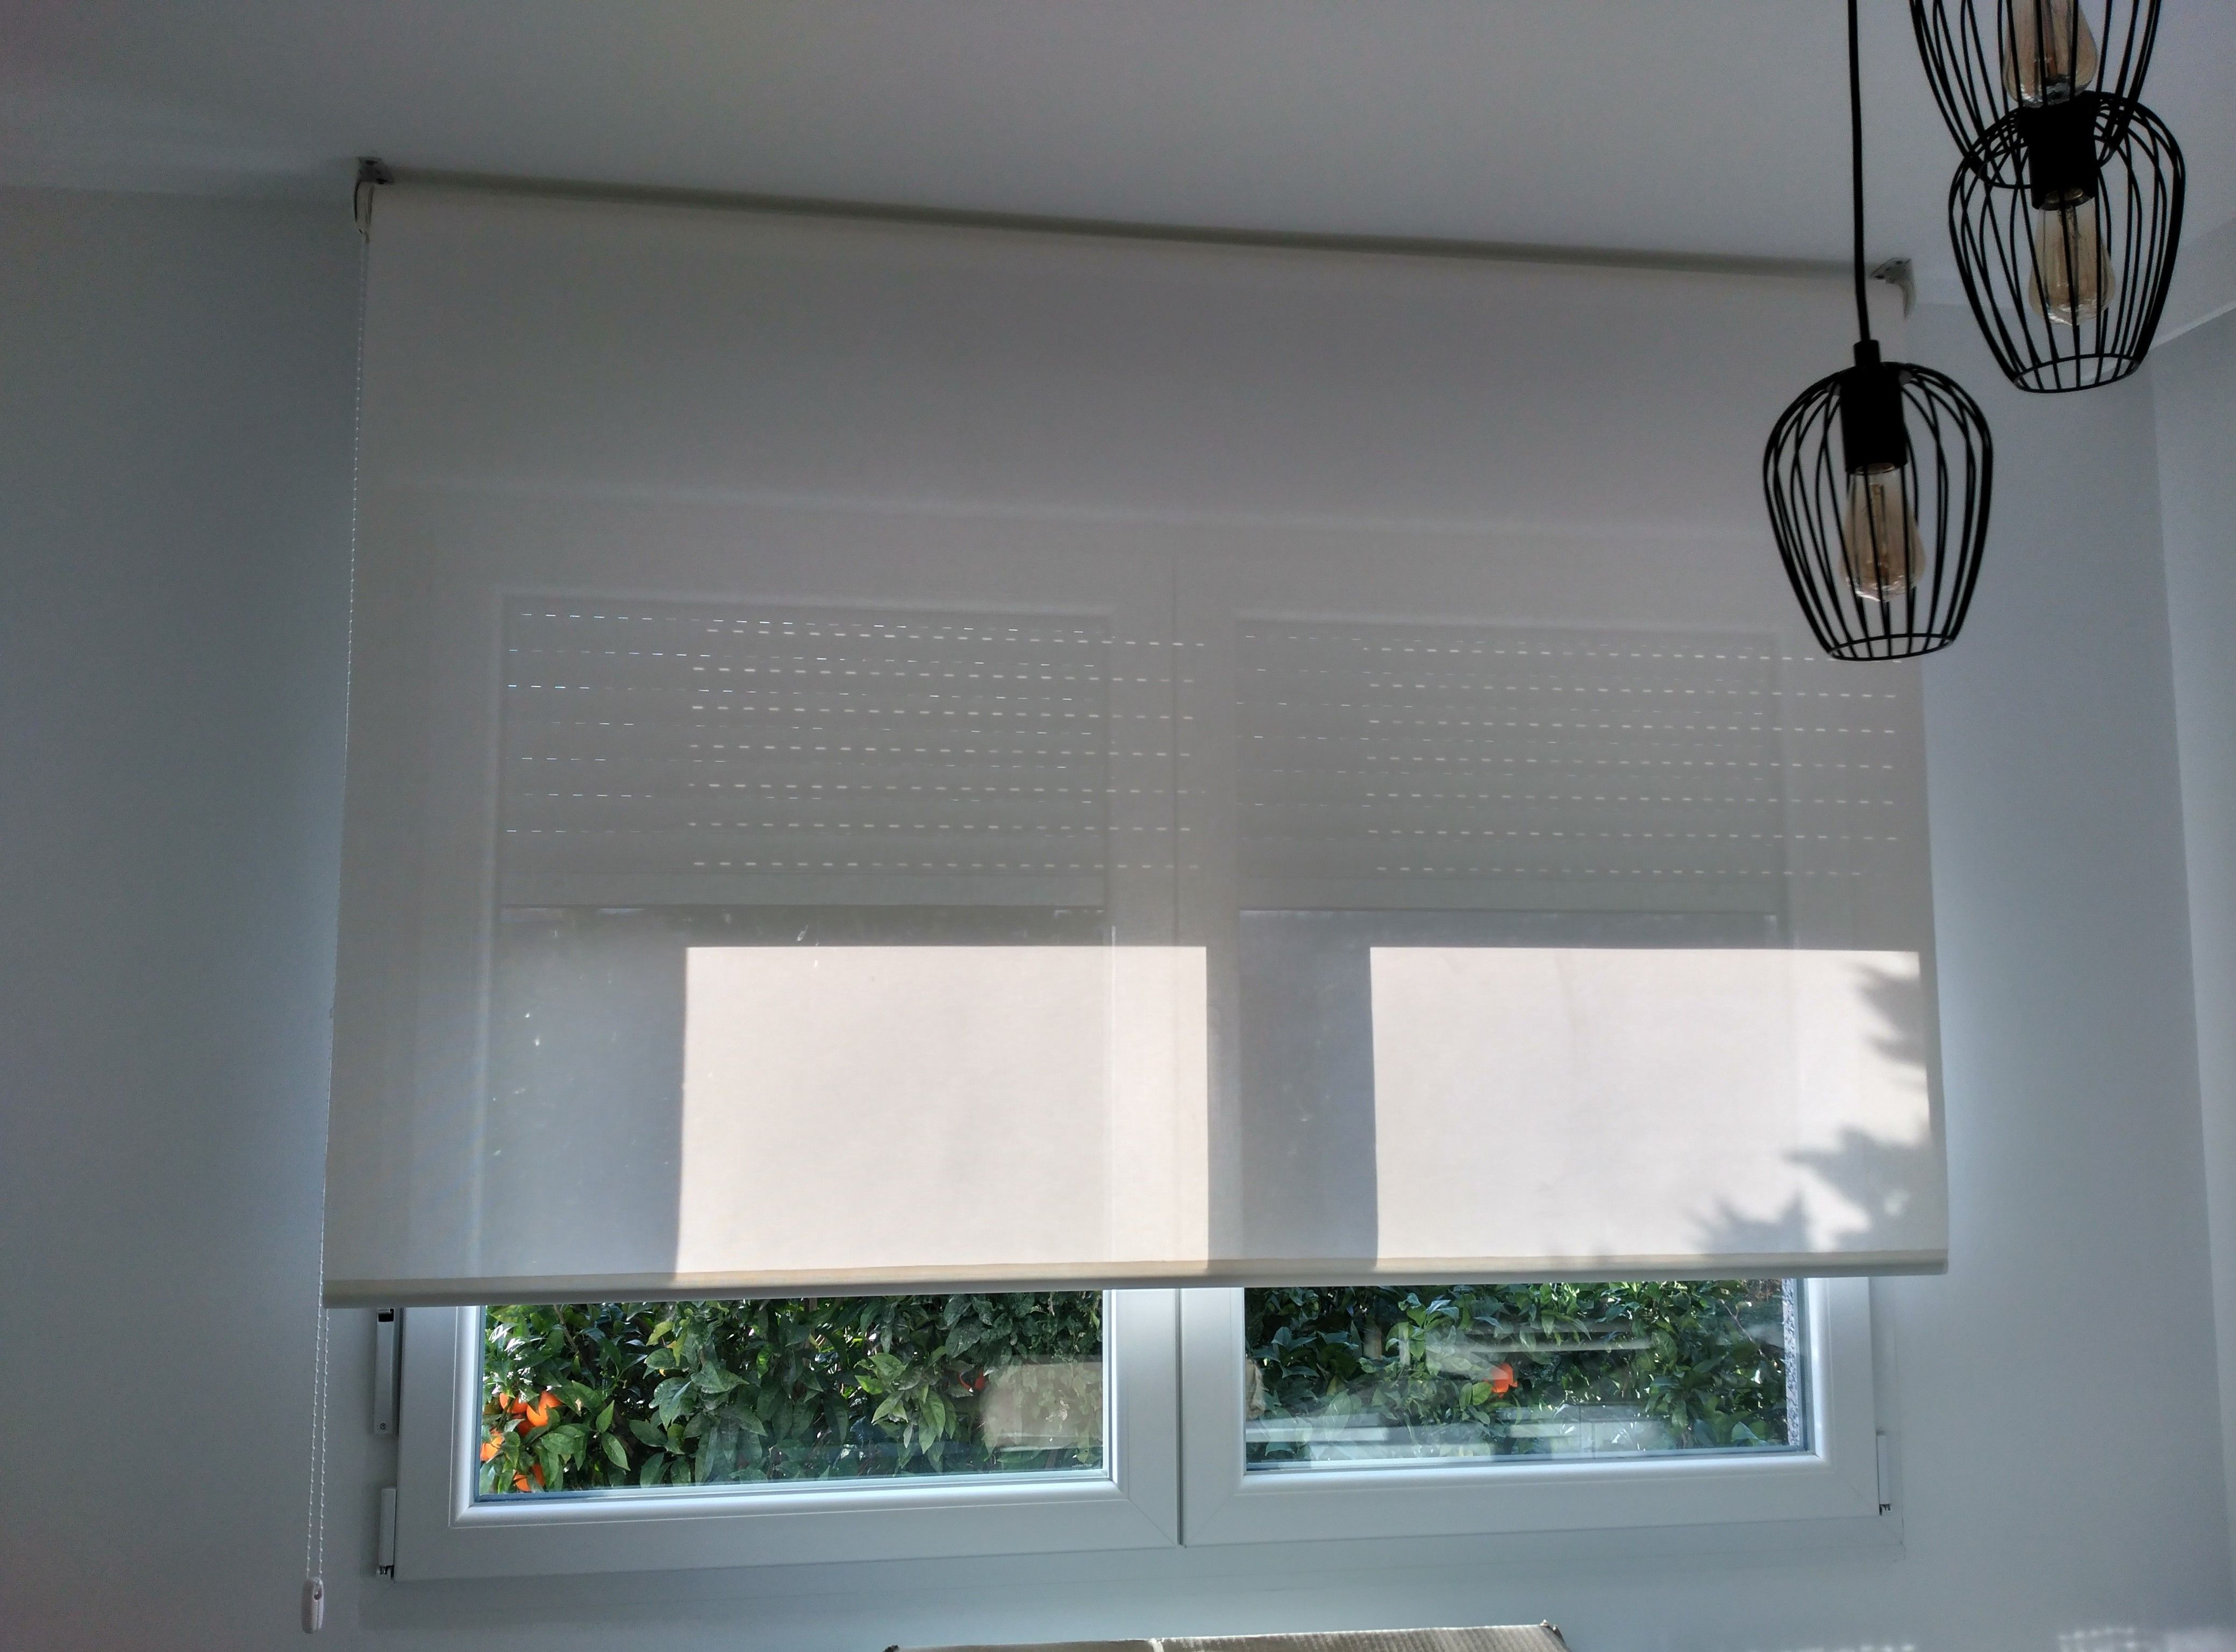 Roller Schlafzimmerschrank ~ Roller shades are one of the hottest decorating trends on the